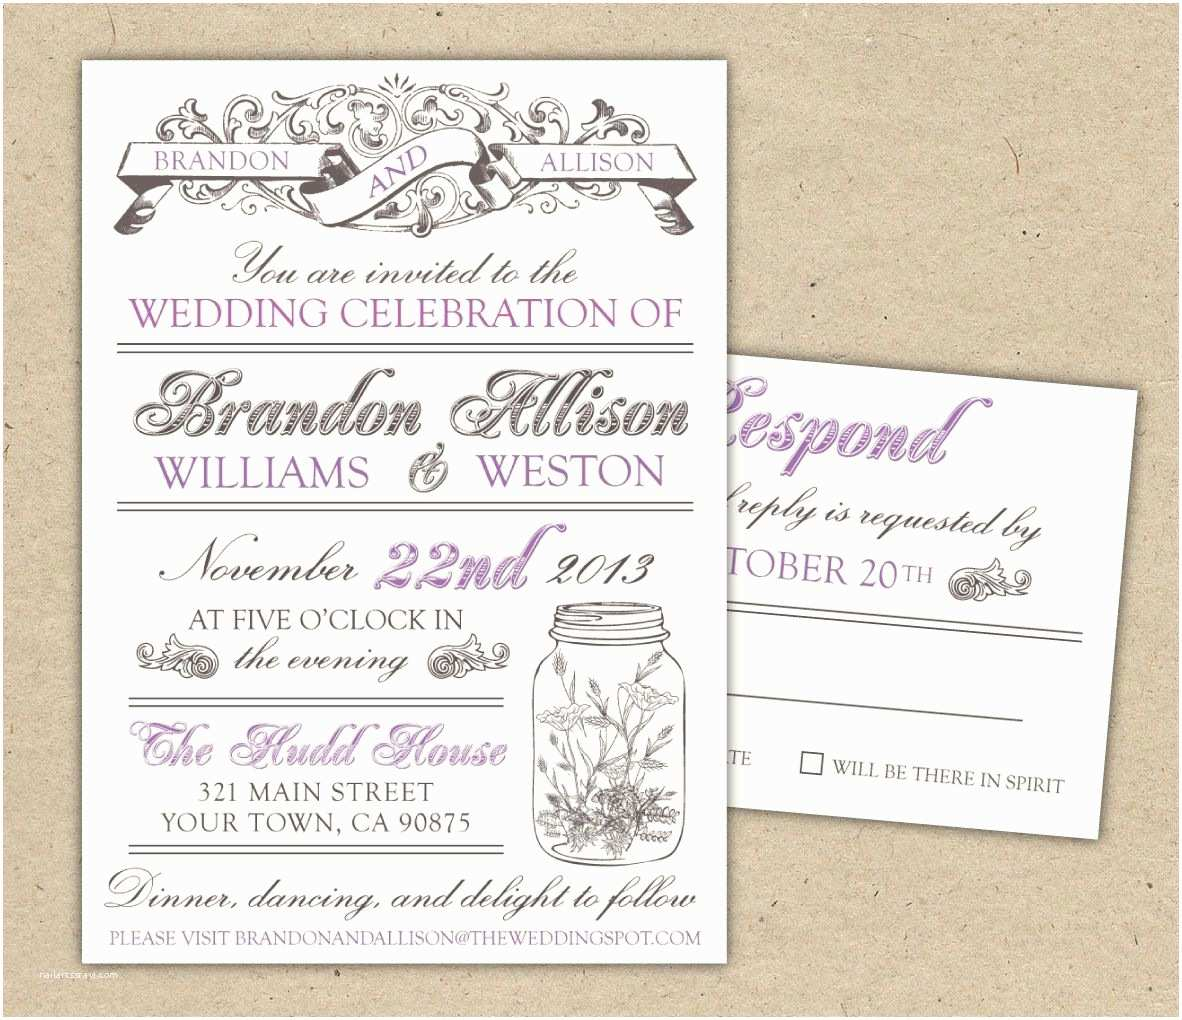 Free Wedding Invitation Samples Free Templates for Invitations